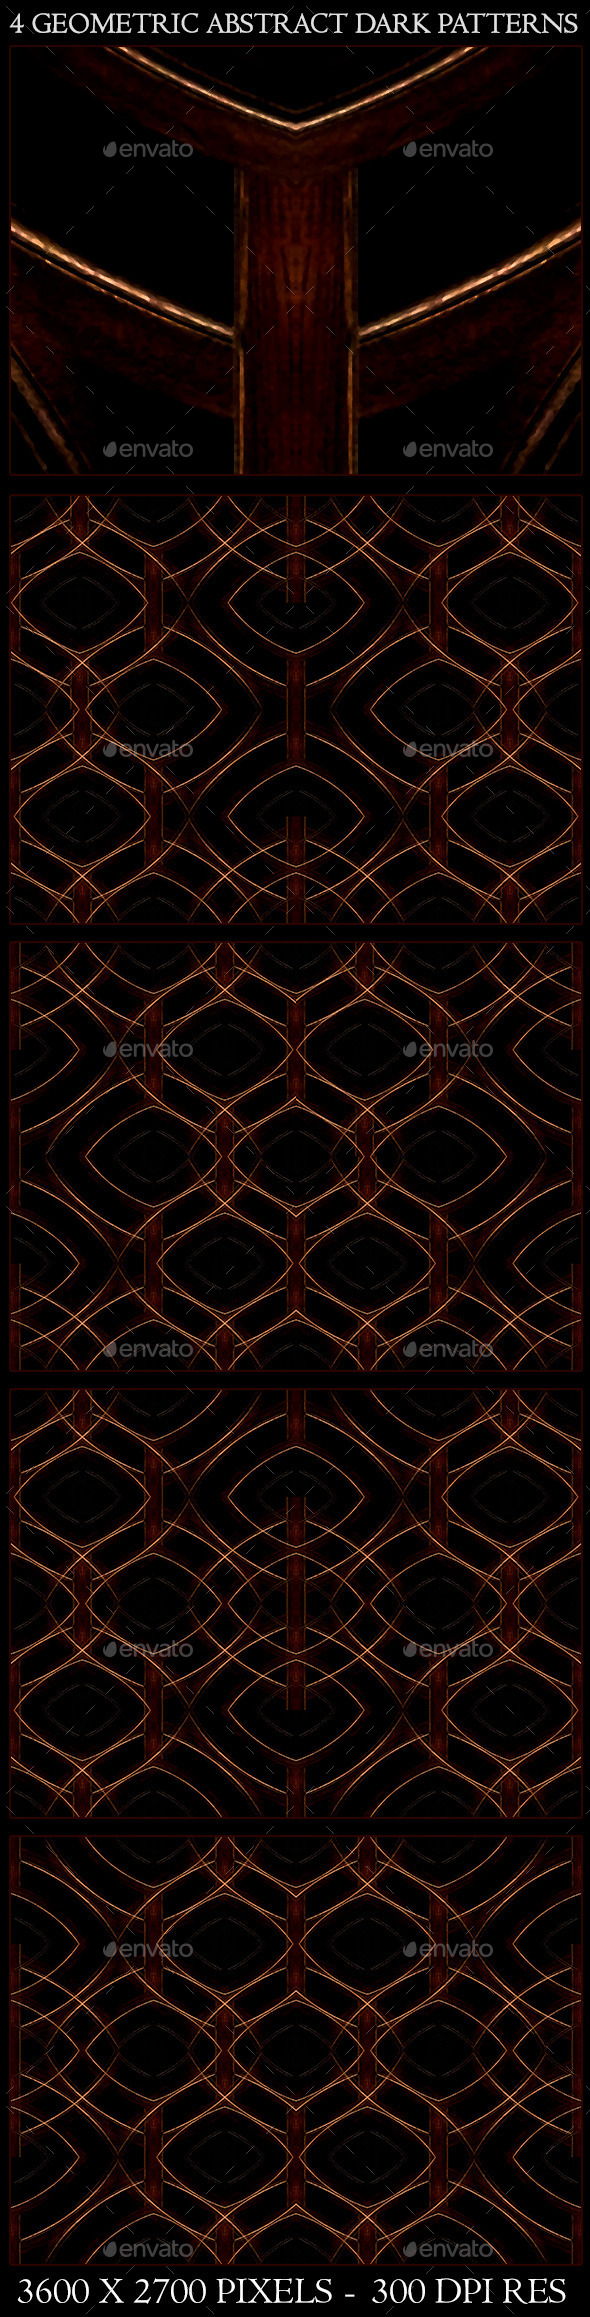 4 Geometric Abstract Dark Patterns - Patterns Backgrounds